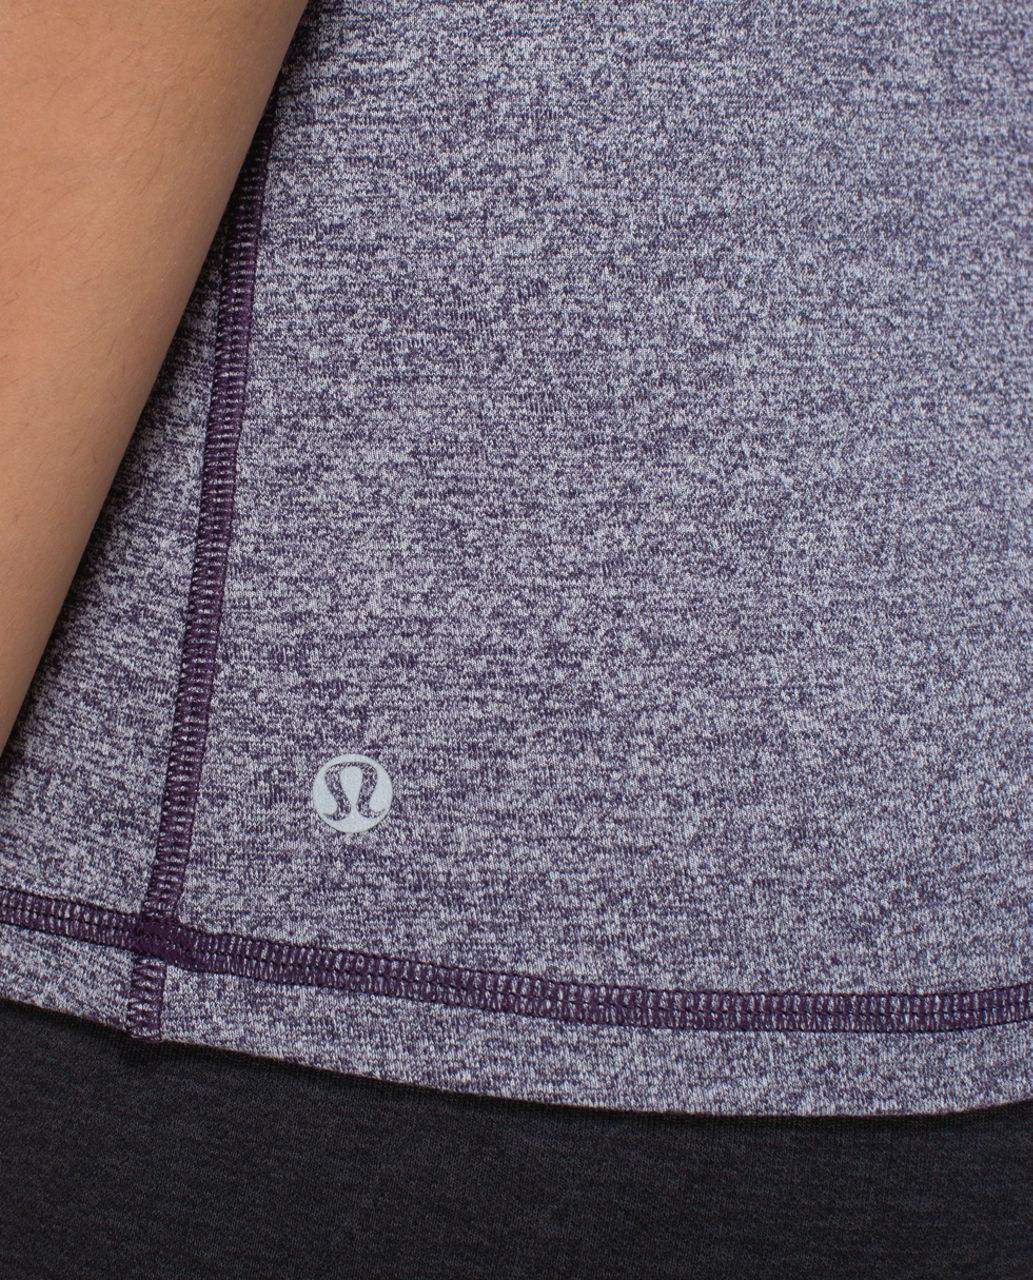 Lululemon Inspiration Tank - Heathered Black Grape / Going Grape